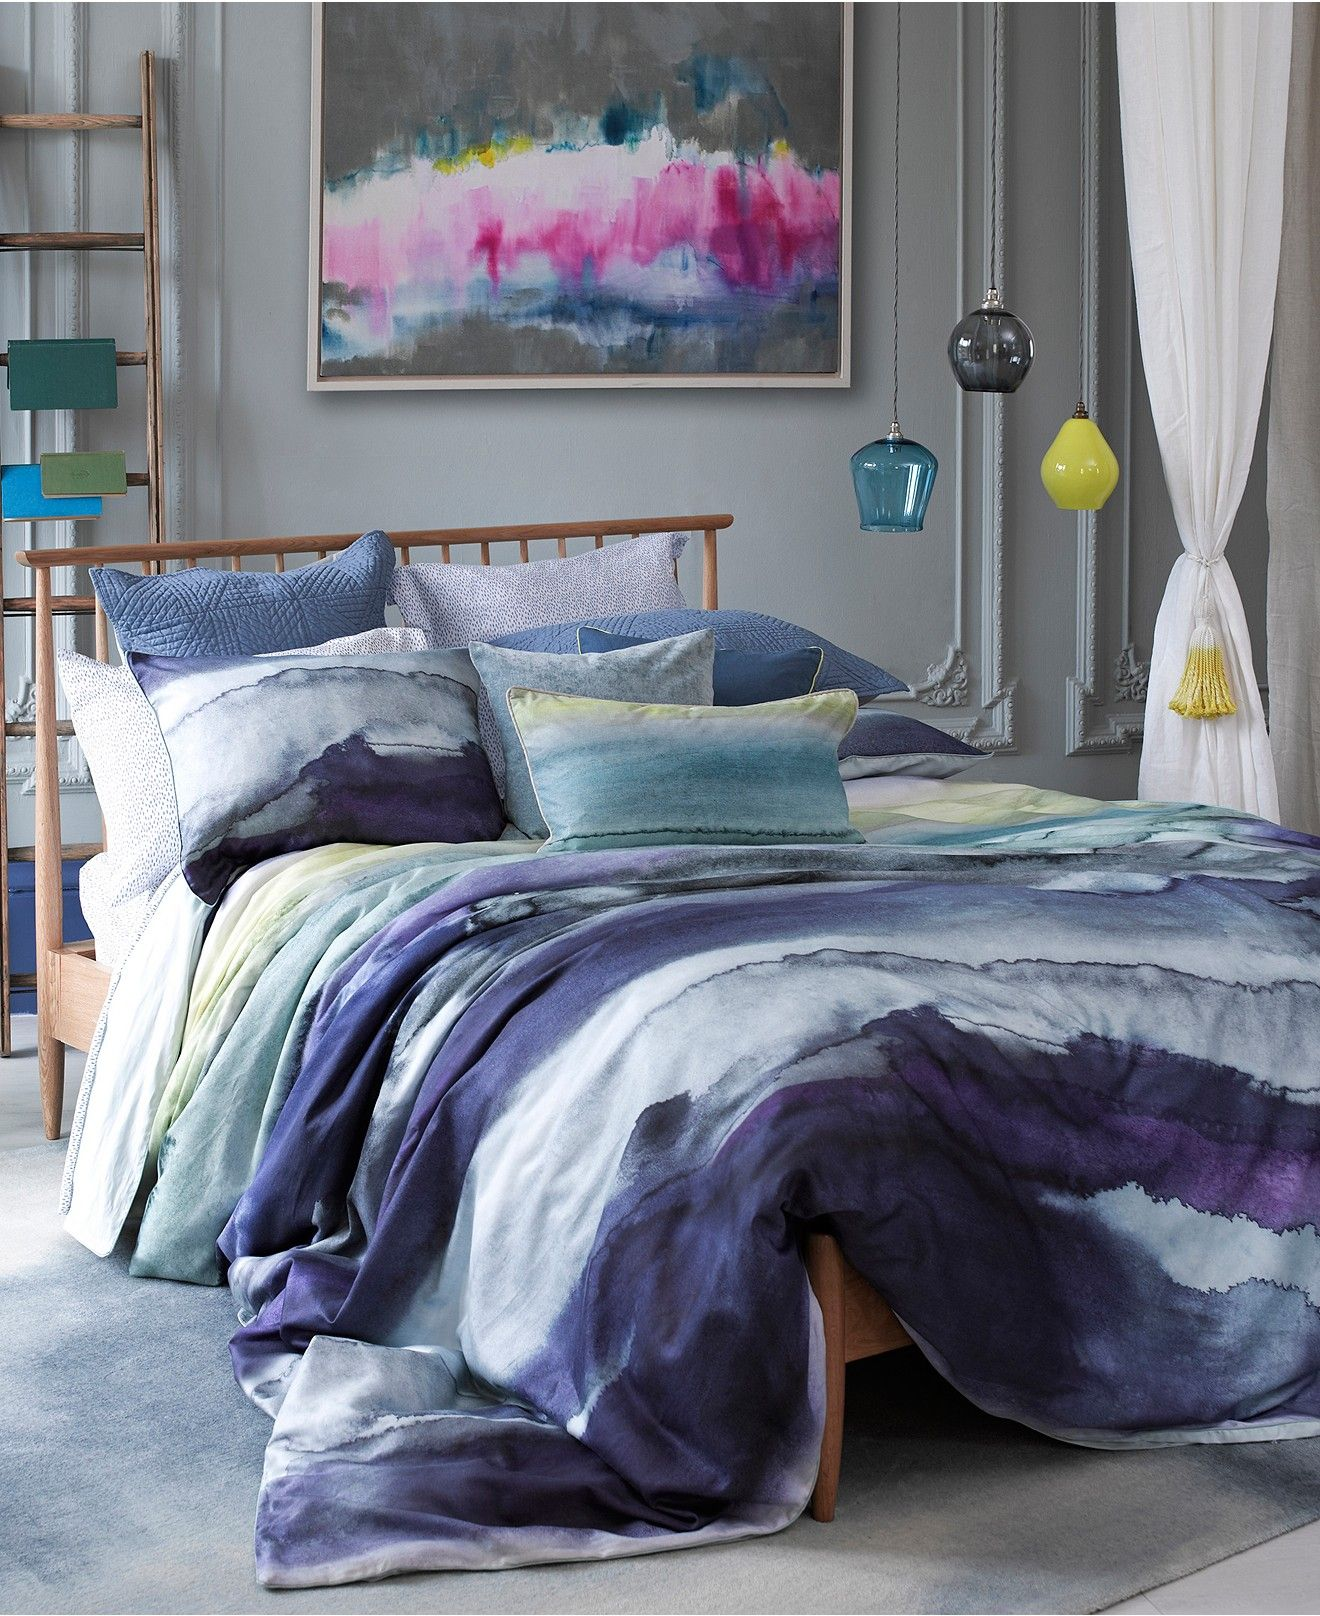 closeout bluebellgray morar comforter and duvet sets bedding closeout bluebellgray morar comforter and duvet sets bedding collections bed bath peacock bedroombed ideasbedroom